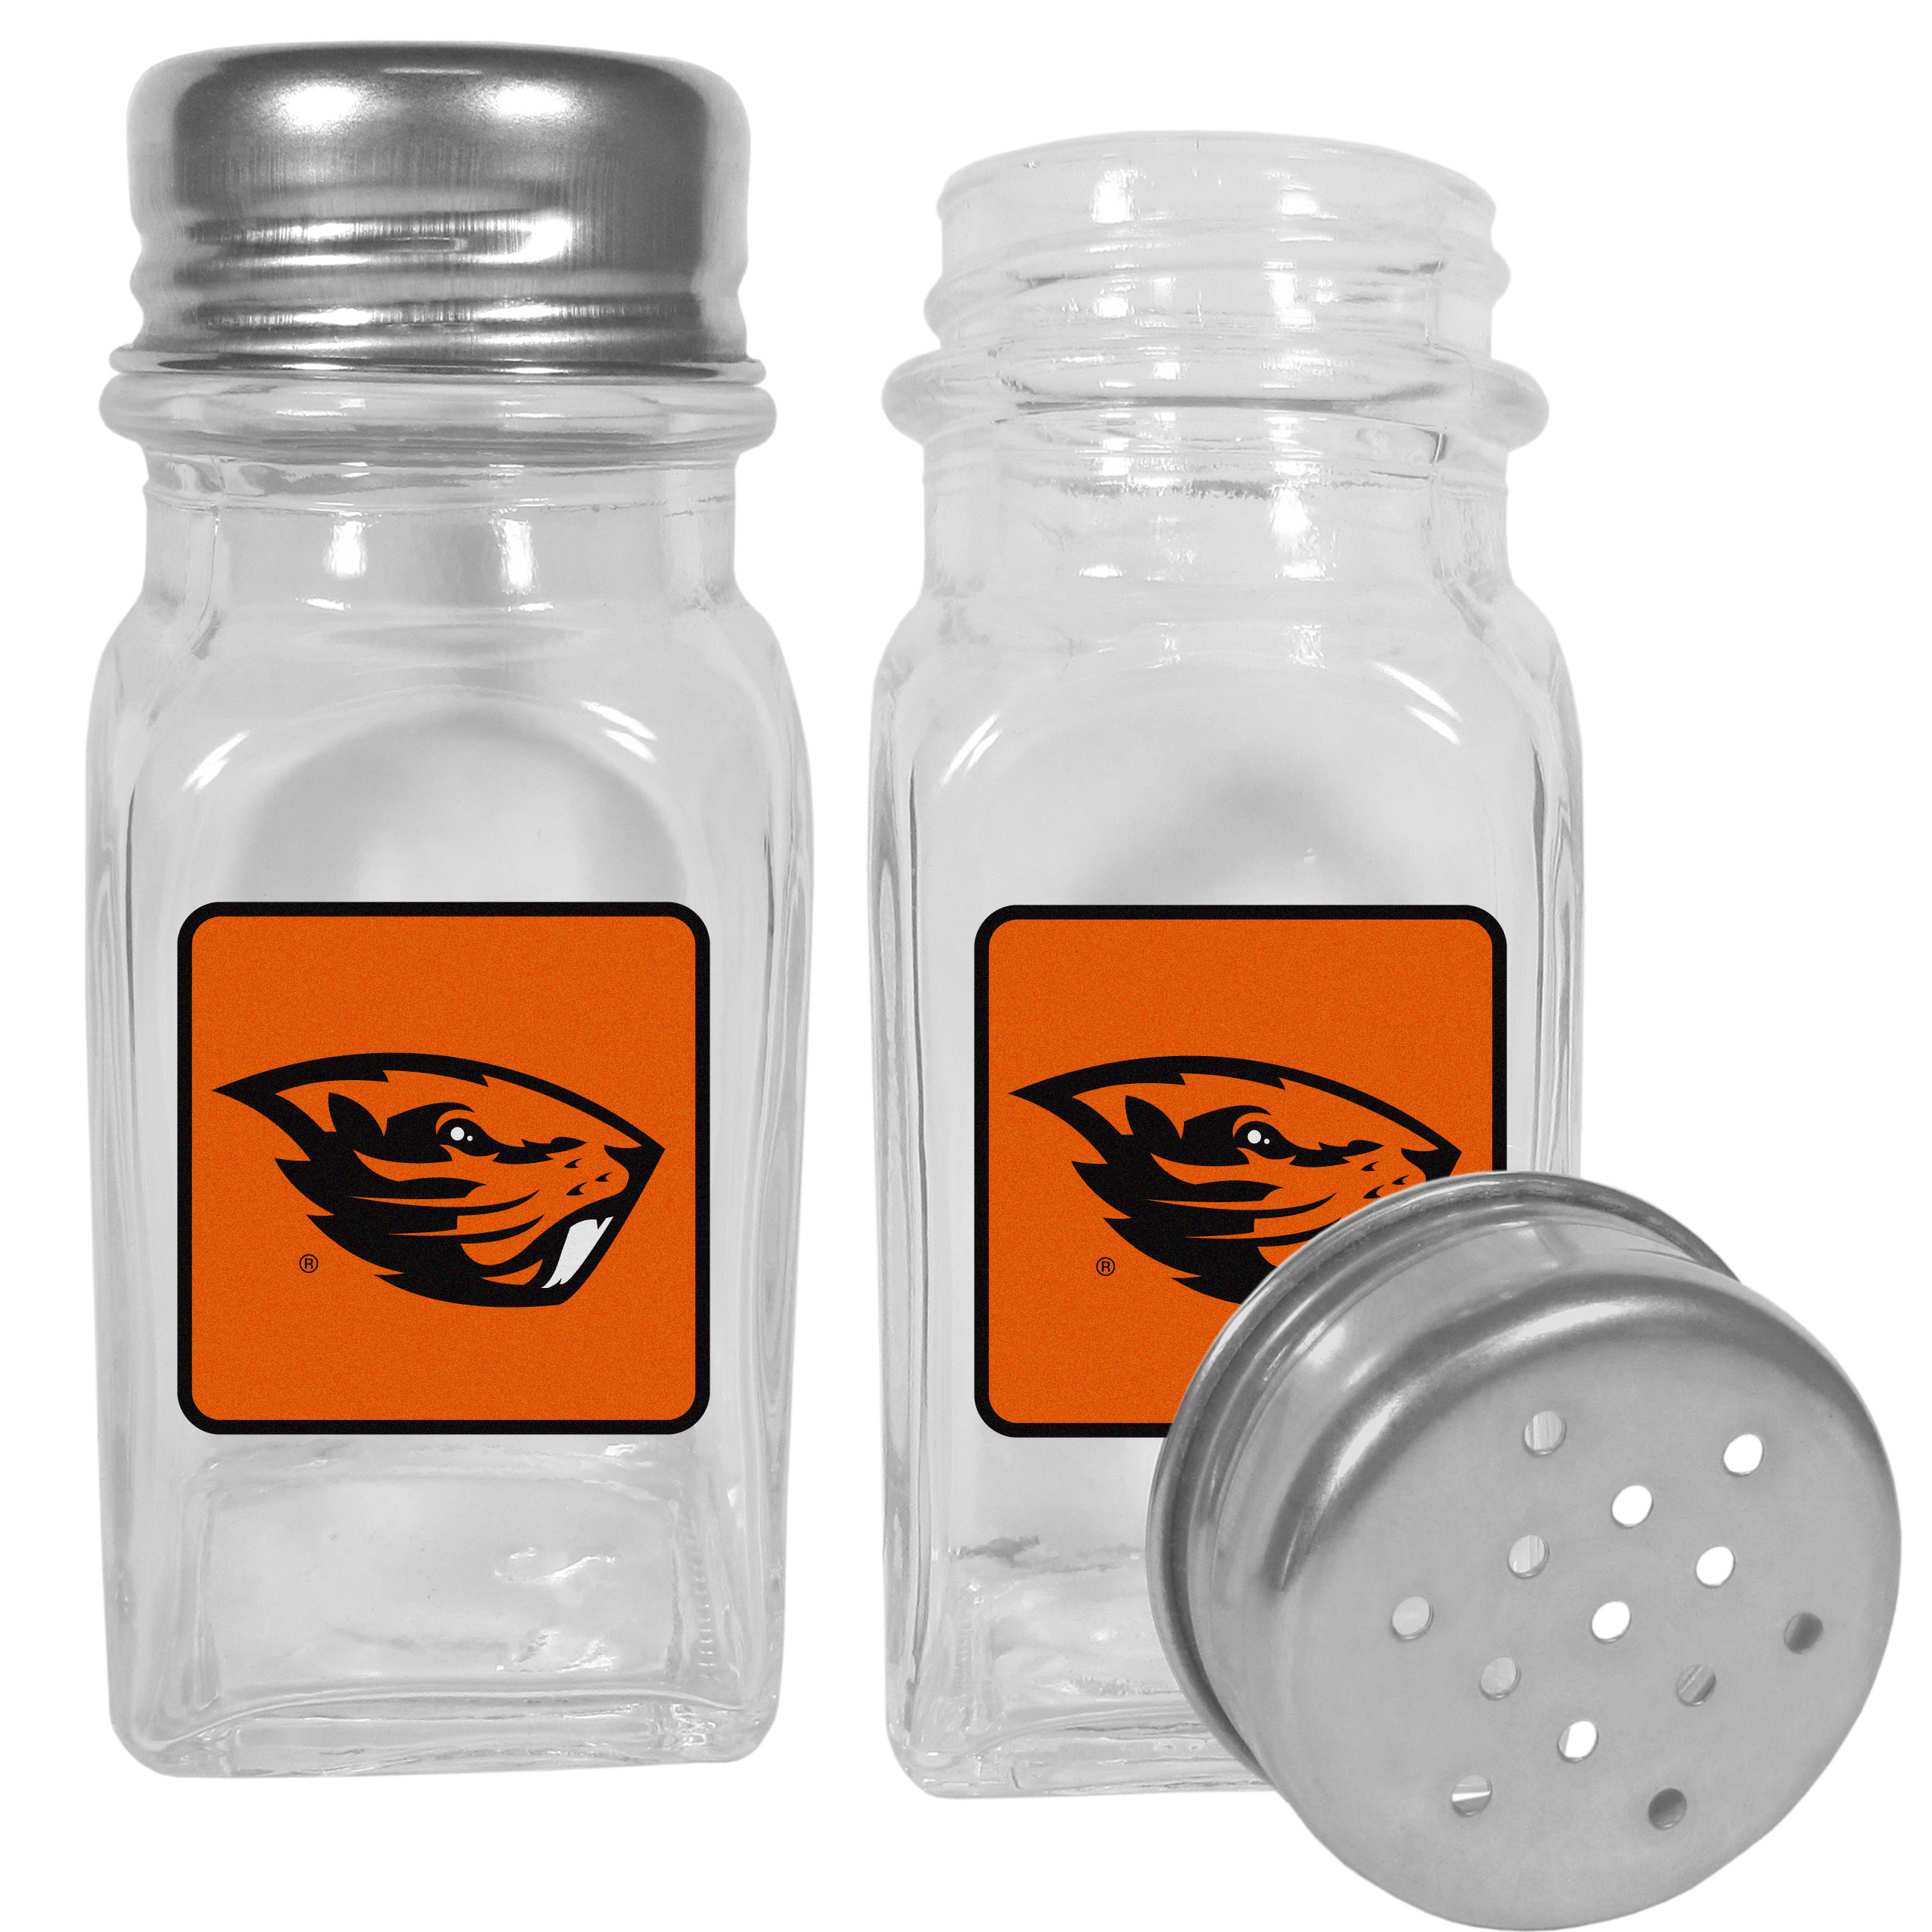 Oregon St. Beavers Graphics Salt & Pepper Shaker - No tailgate party is complete without your Oregon St. Beavers salt & pepper shakers featuring bright team logos. The diner replica salt and pepper shakers are glass with screw top lids. These team shakers are a great grill accessory whether you are barbecuing on the patio, picnicing or having a game day party.